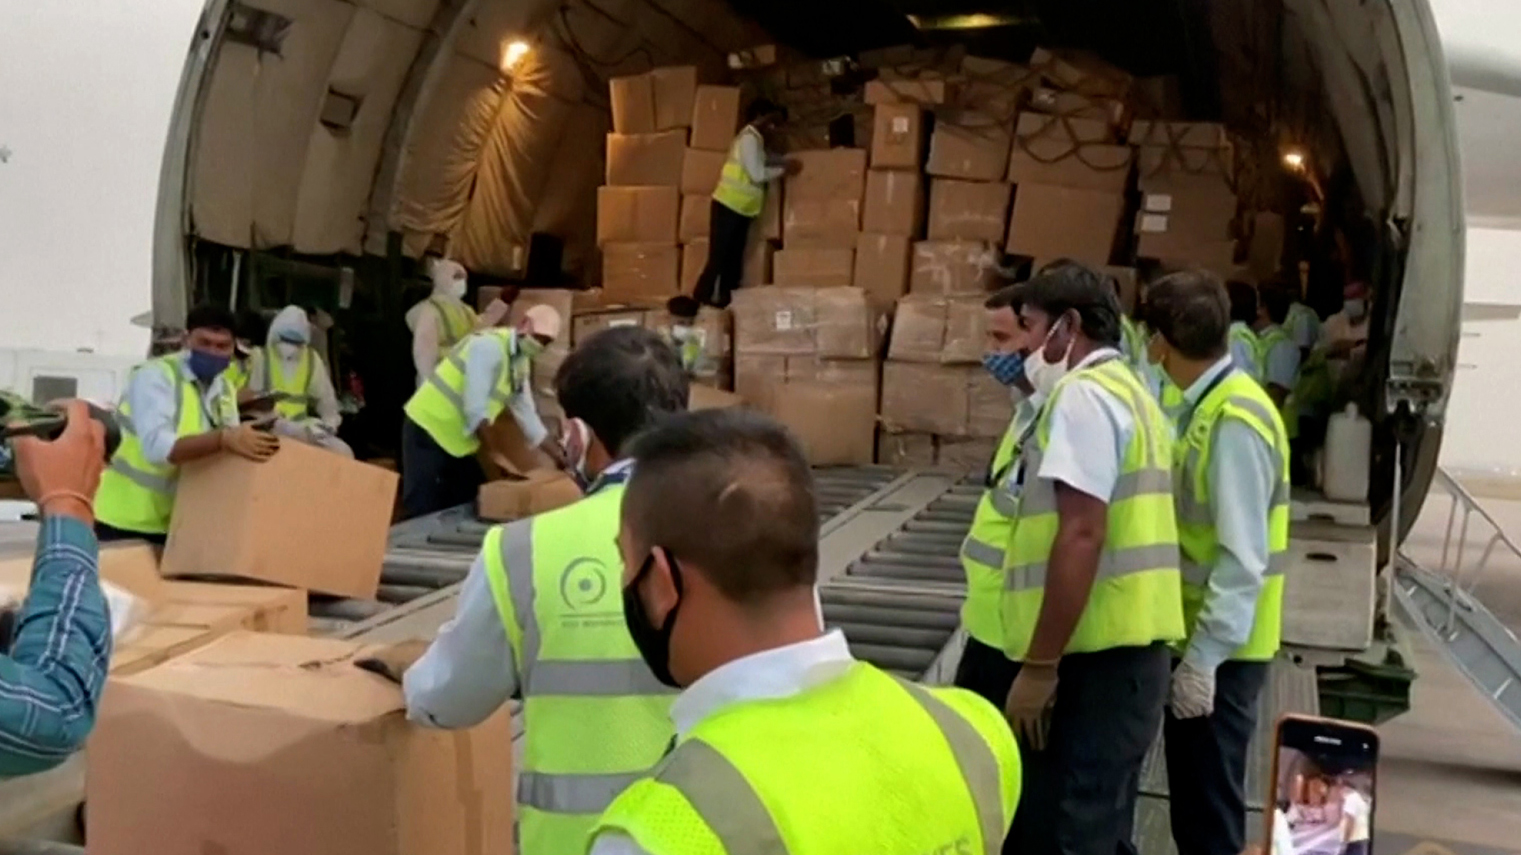 An aircraft carrying medical supplies for India is unloaded in New Delhi, on April 29.